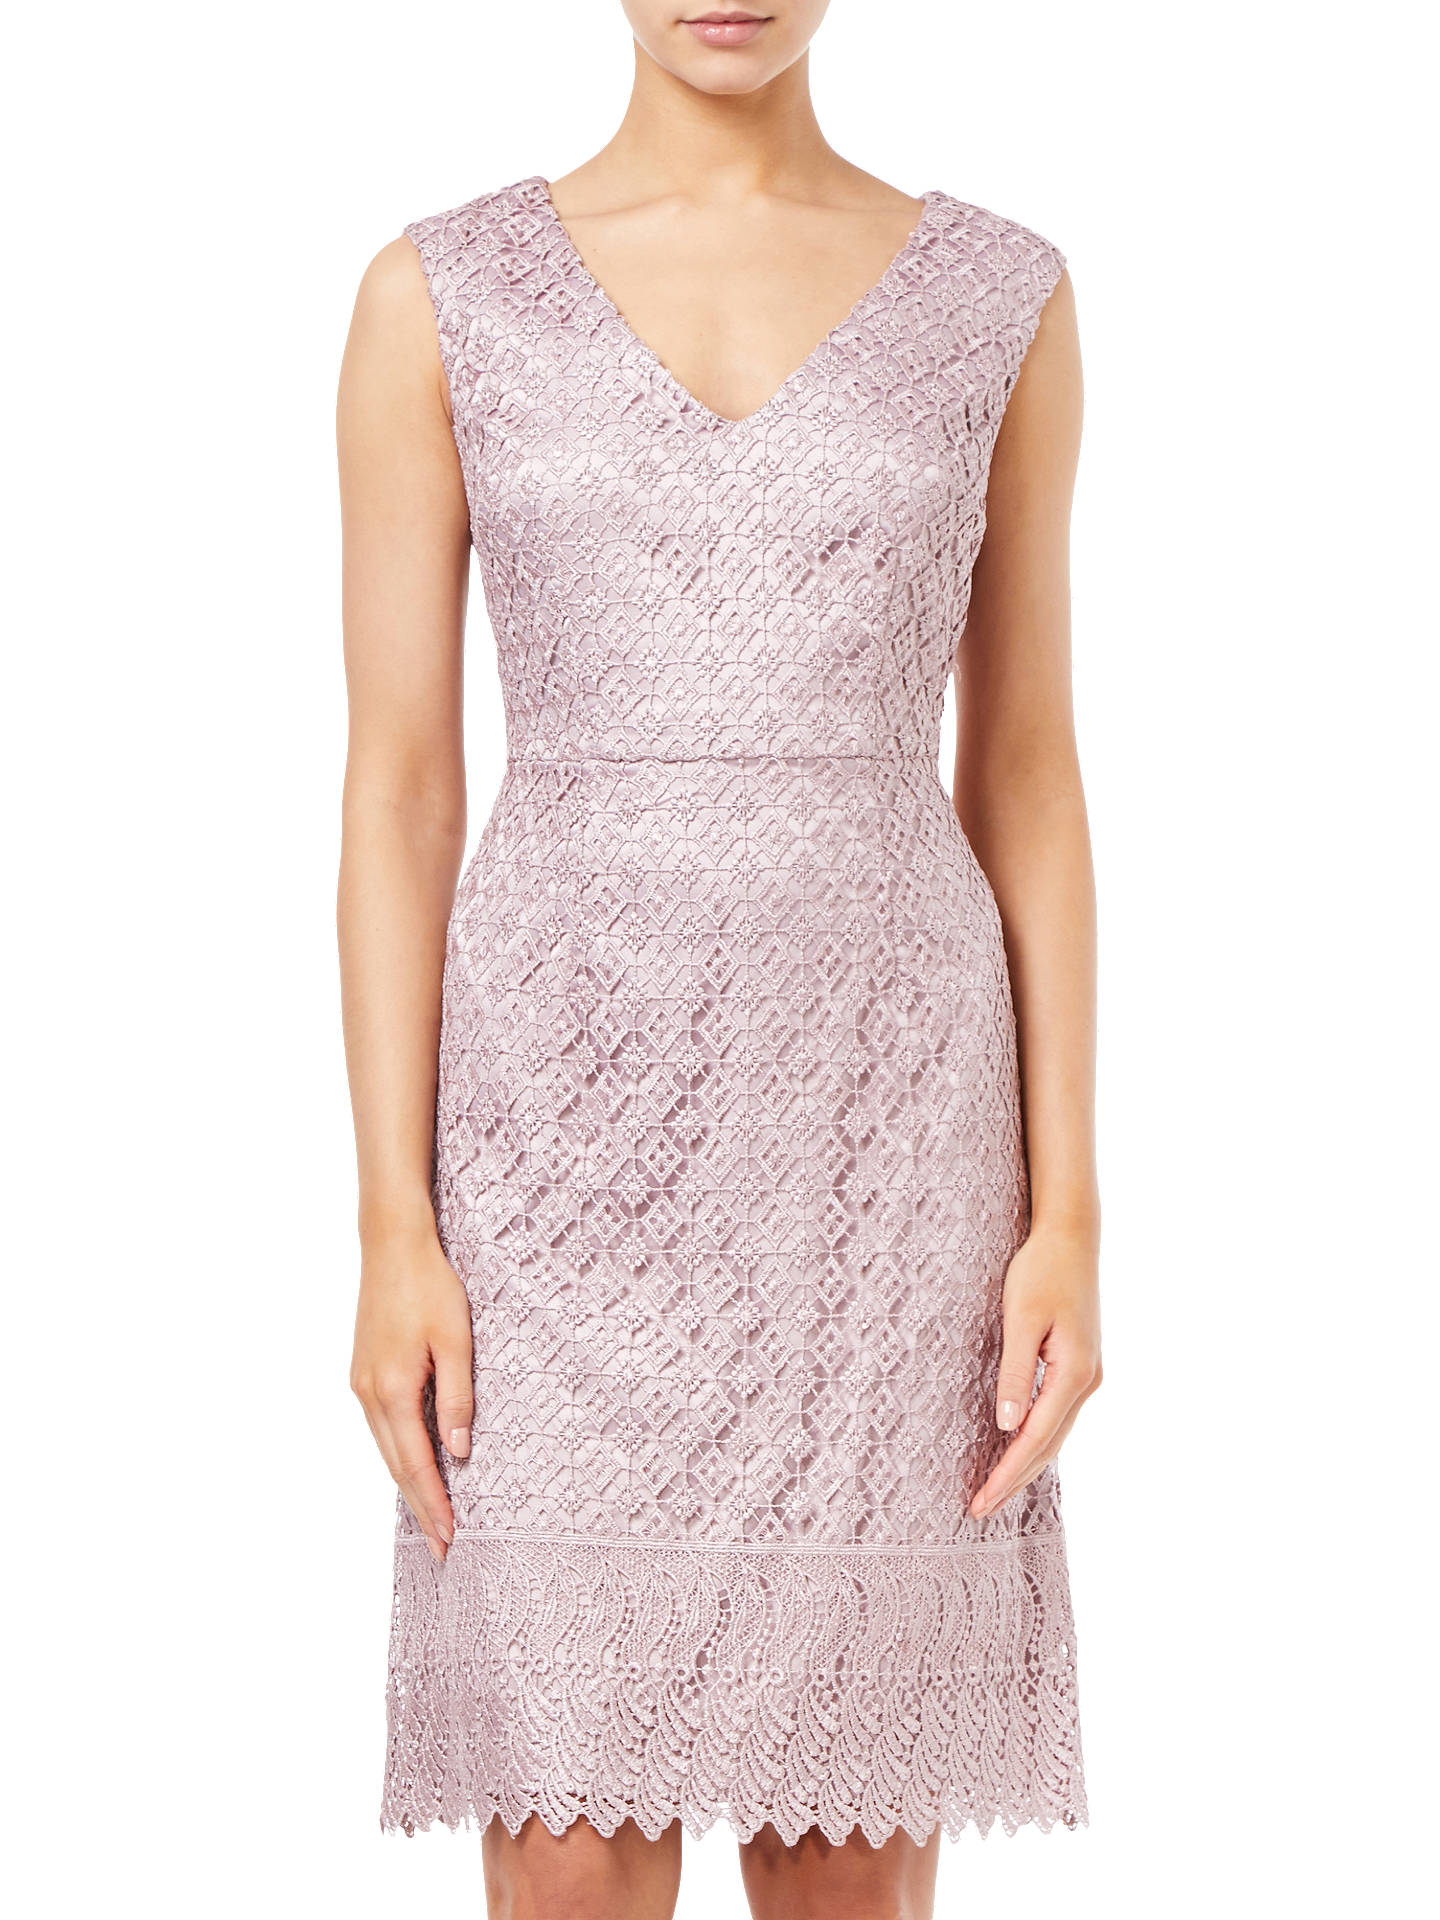 Buy Adrianna Papell Short Guipure Lace Dress, Pink Sateen, 8 Online at johnlewis.com